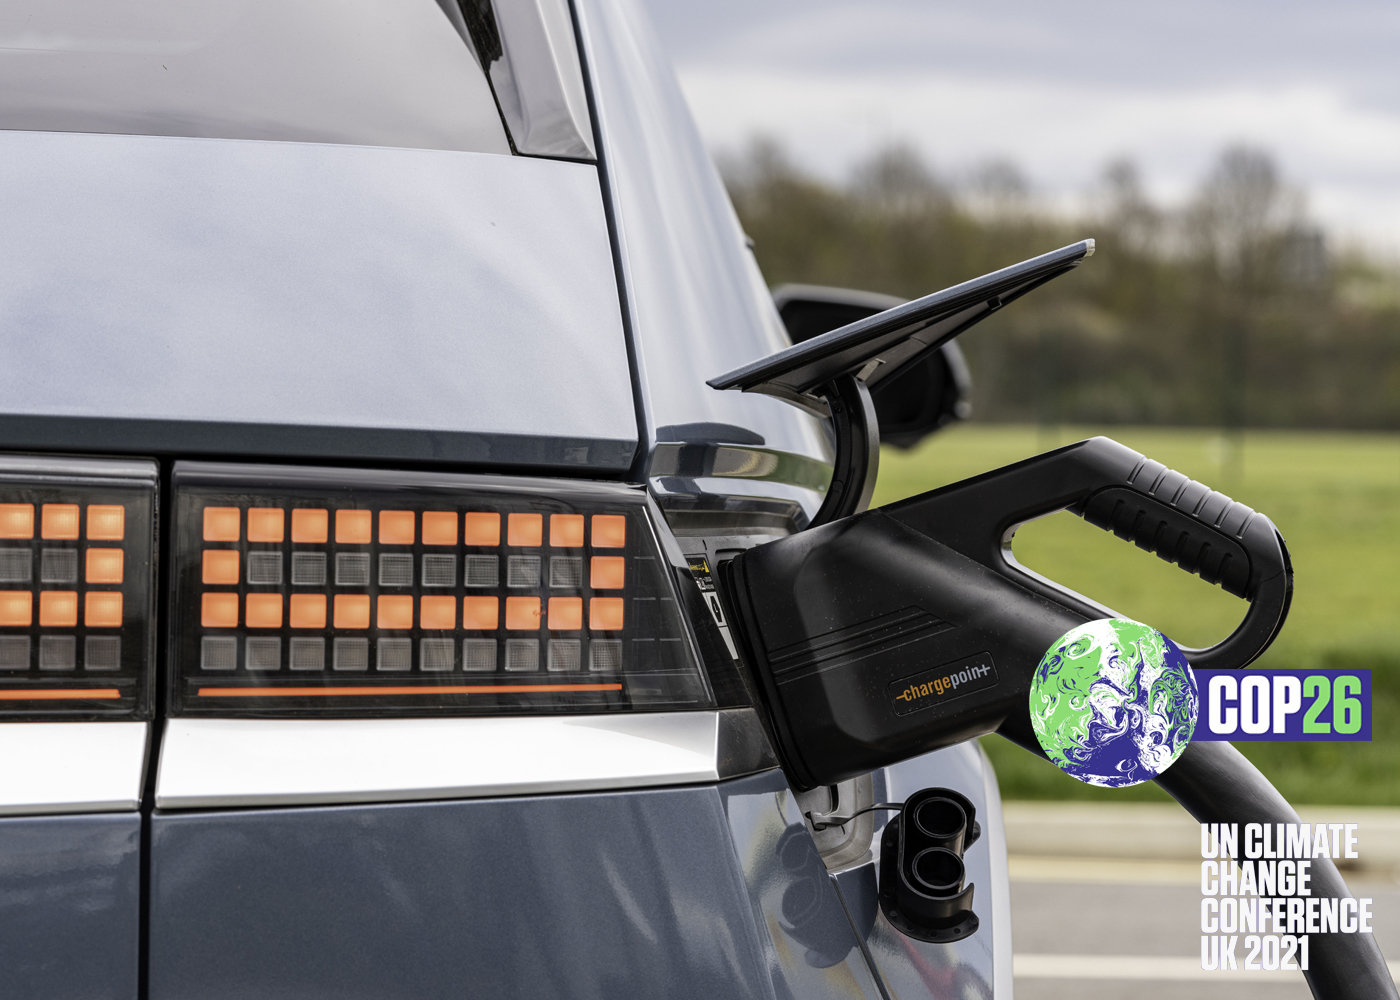 Half-a-million ultra low emission cars now on the road